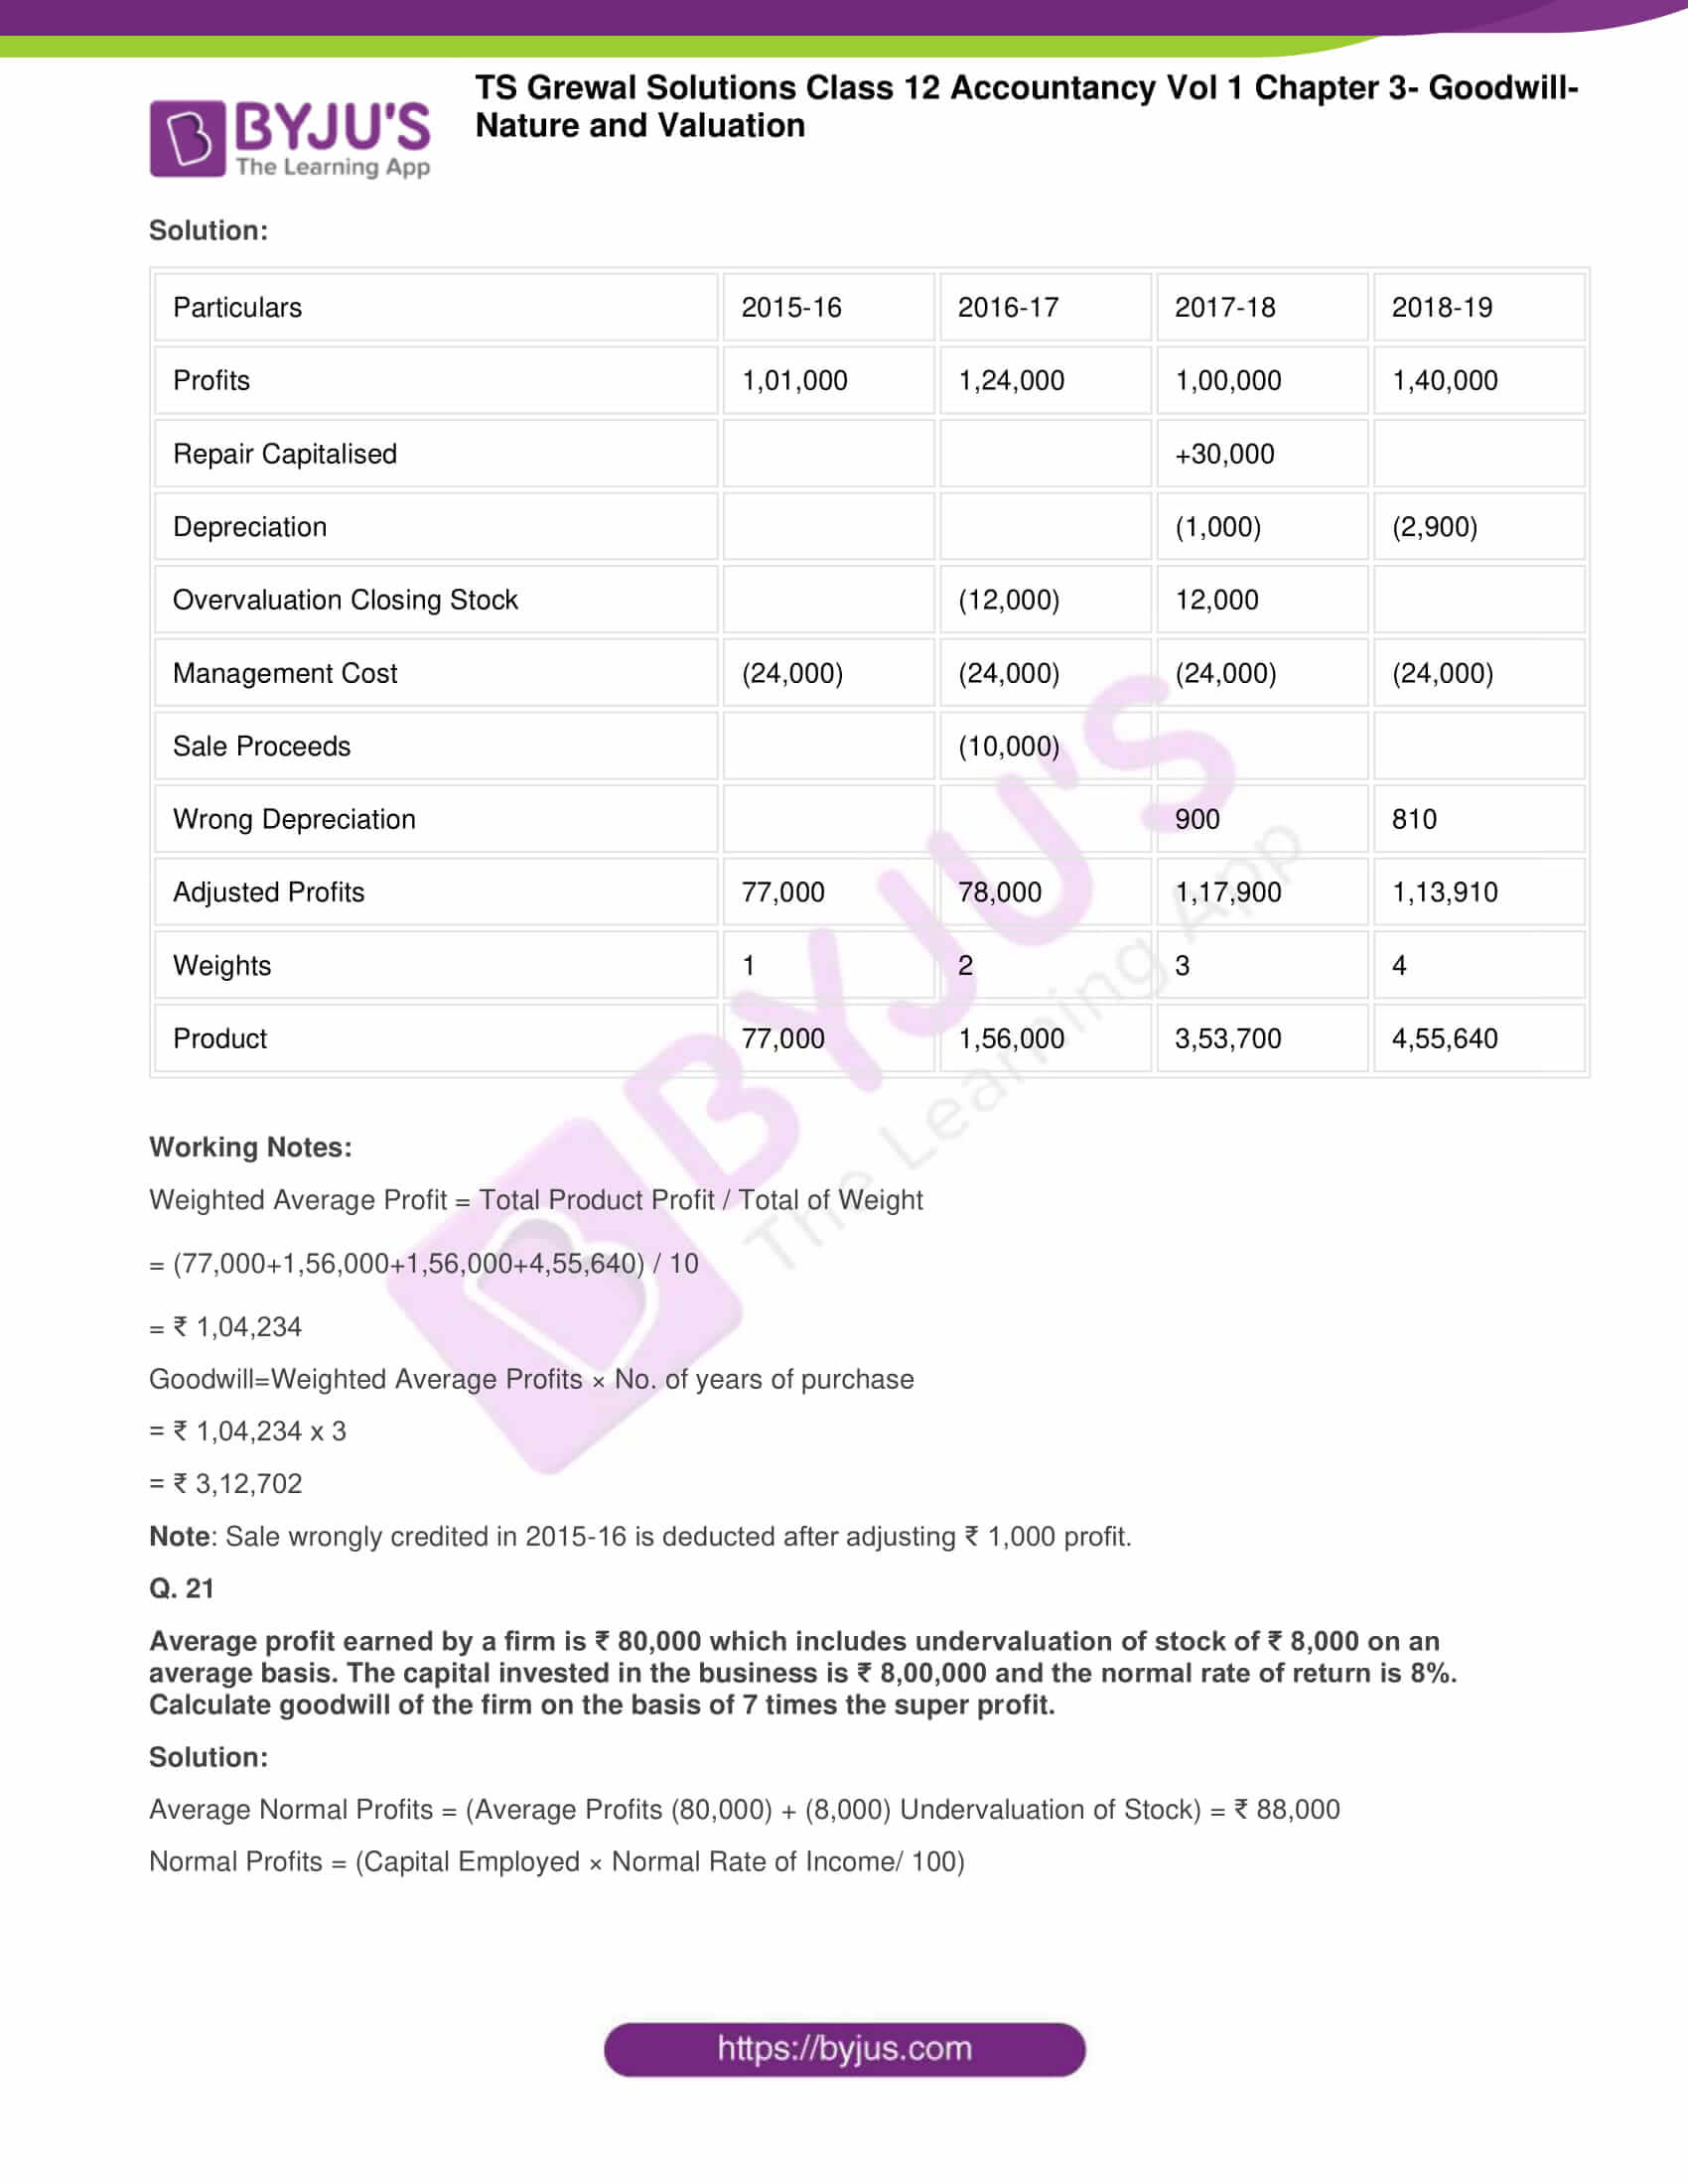 ts grewal solutions for class 12 accountancy vol 1 chapter 320